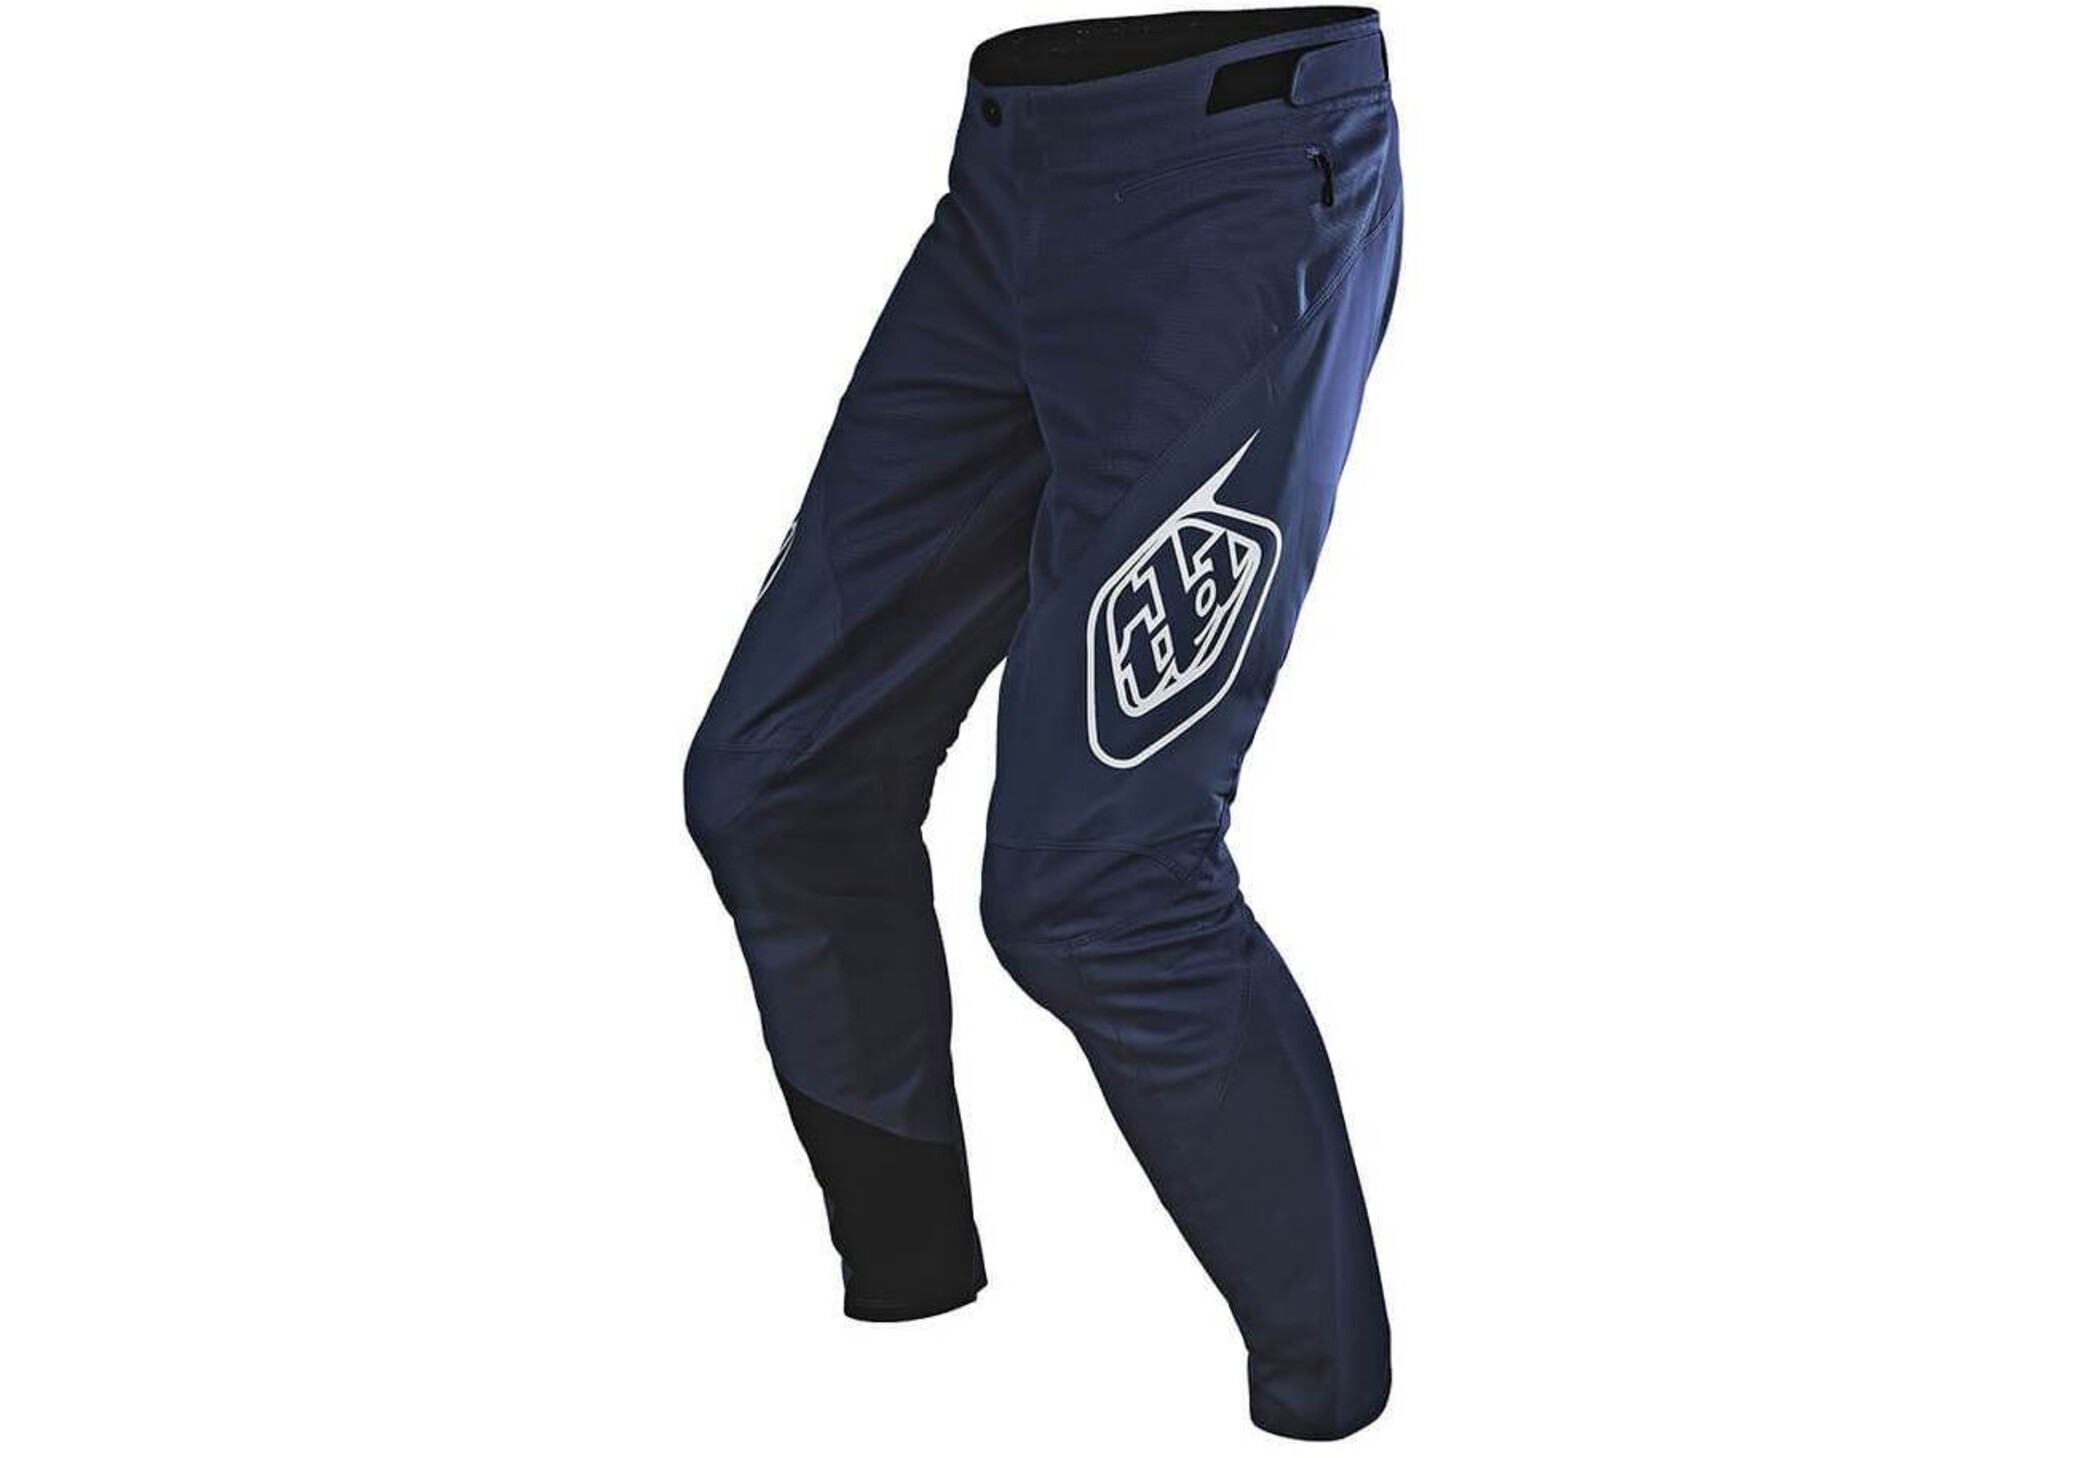 Troy Lee Designs Sprint Pantalones Jovenes Navy Bikester Es